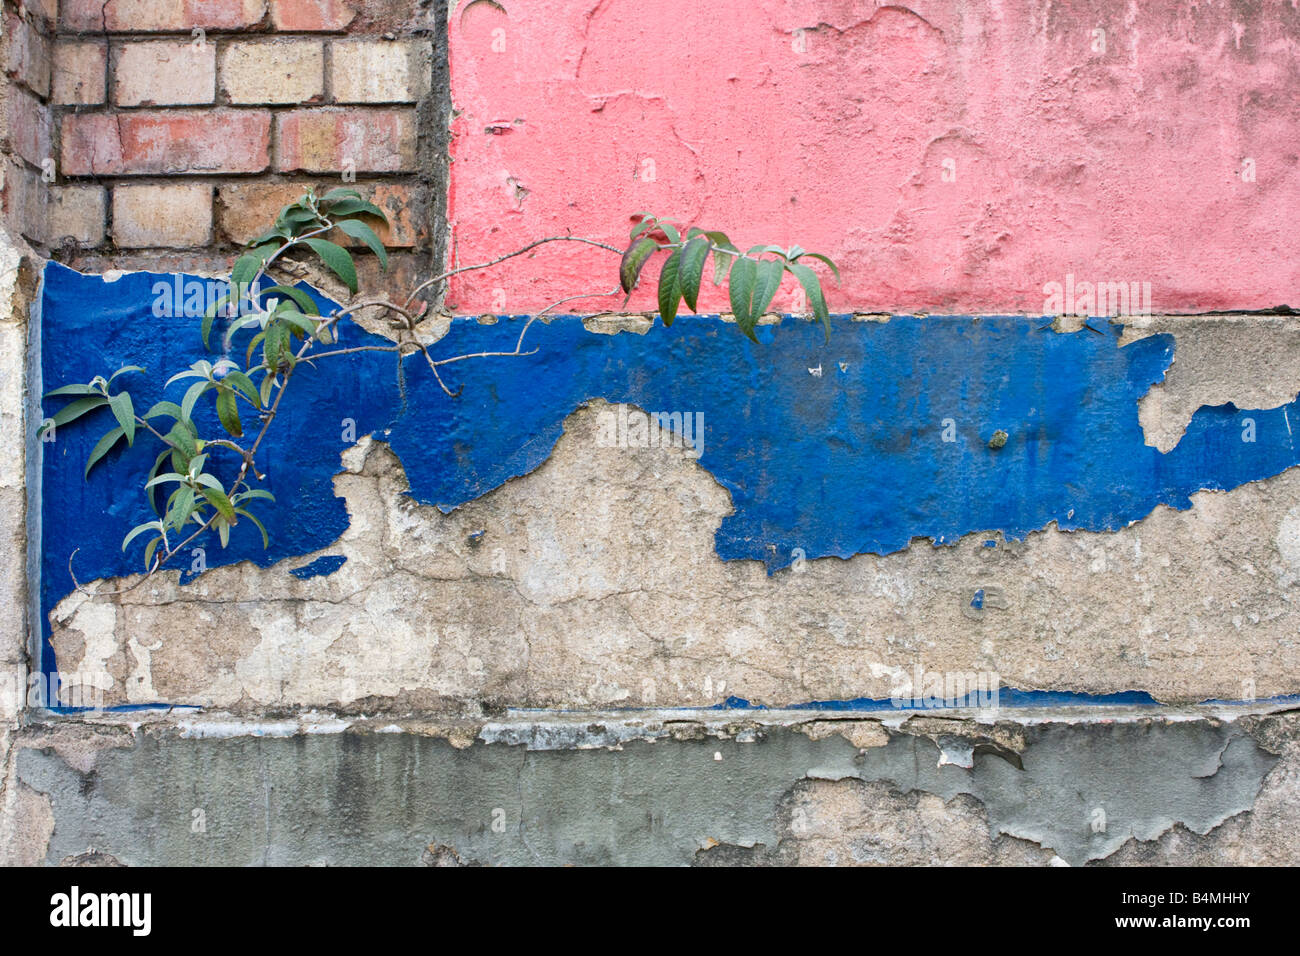 Flaking and peeling paint with a Buddleja growing amongst it on former Odeon Cinema St Albans UK - Stock Image